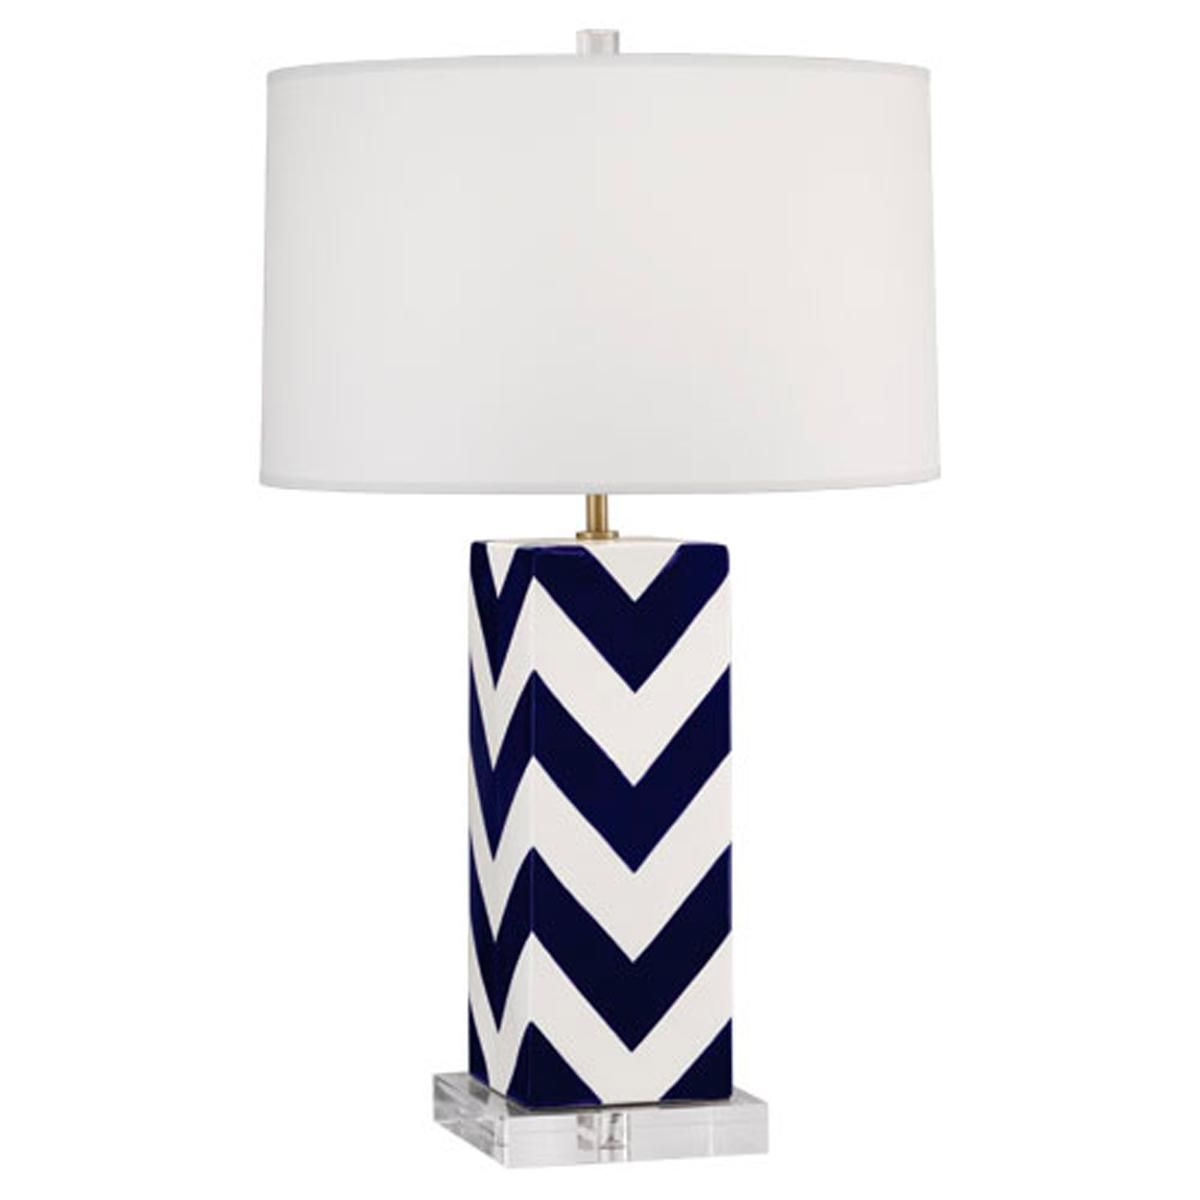 Mary Mcdonald Chevron Stripe Table Lamp Designed By Famous